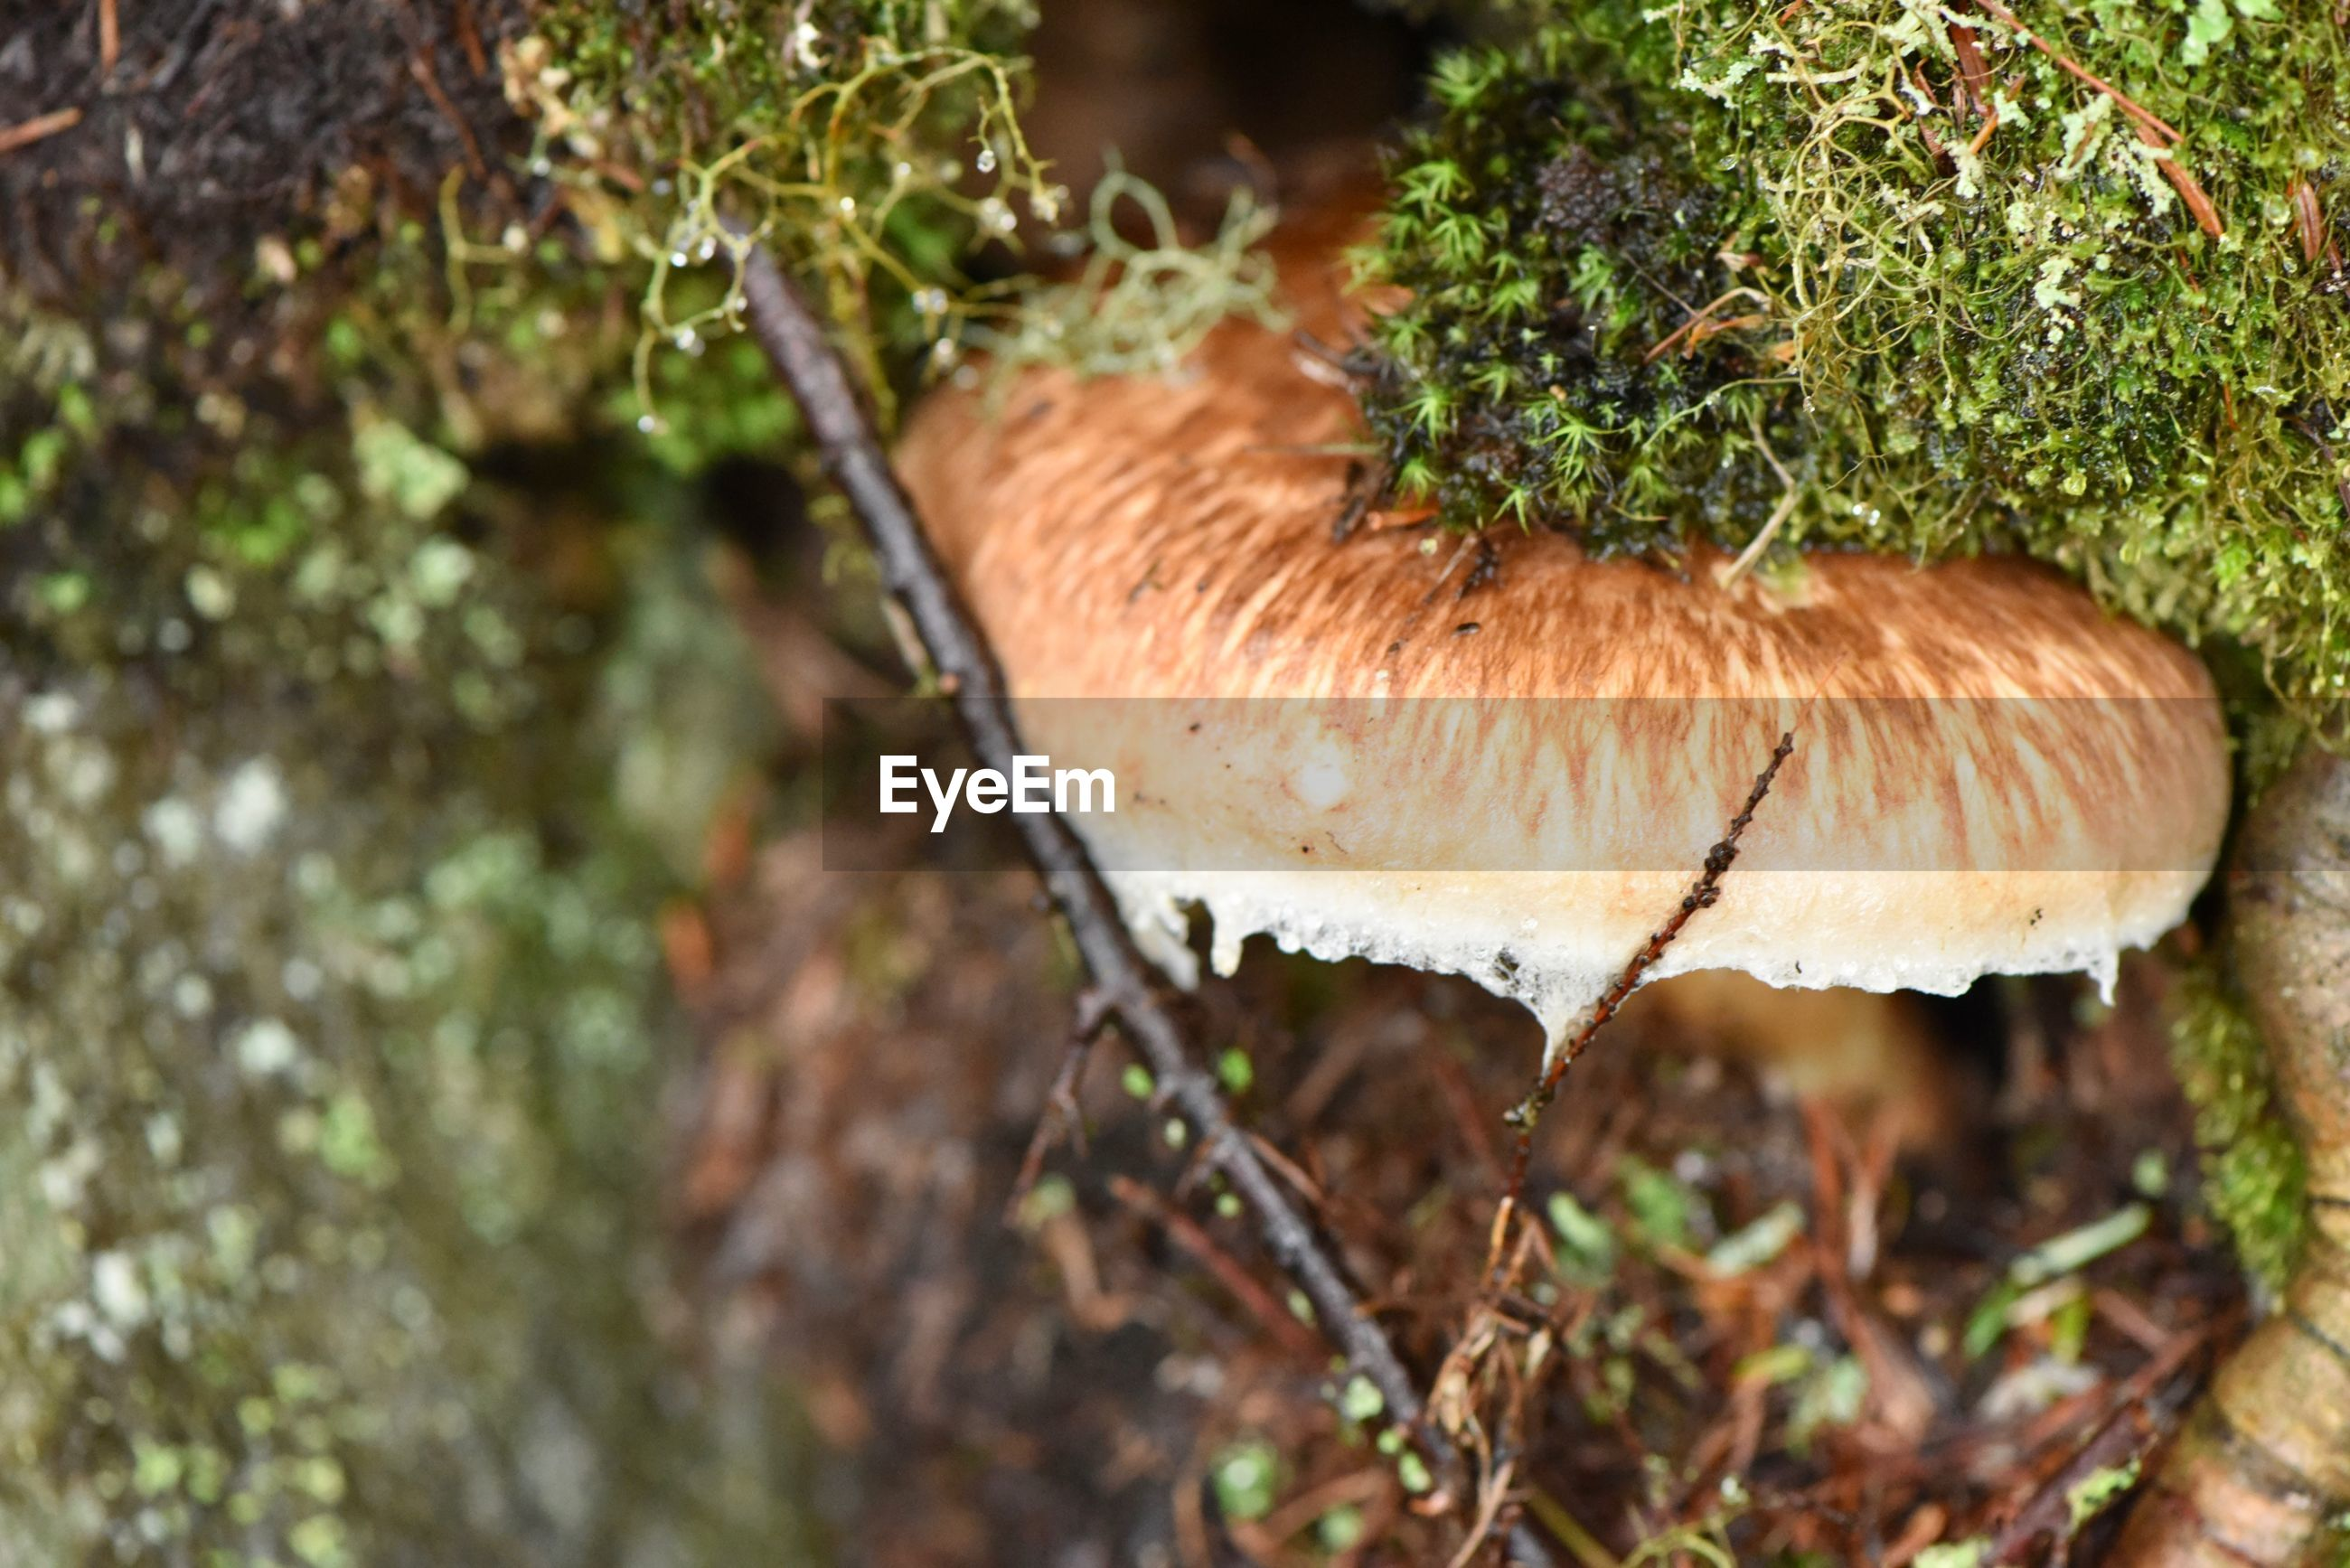 mushroom, fungus, vegetable, plant, food, growth, close-up, nature, day, toadstool, no people, beauty in nature, edible mushroom, land, food and drink, outdoors, selective focus, tree, moss, field